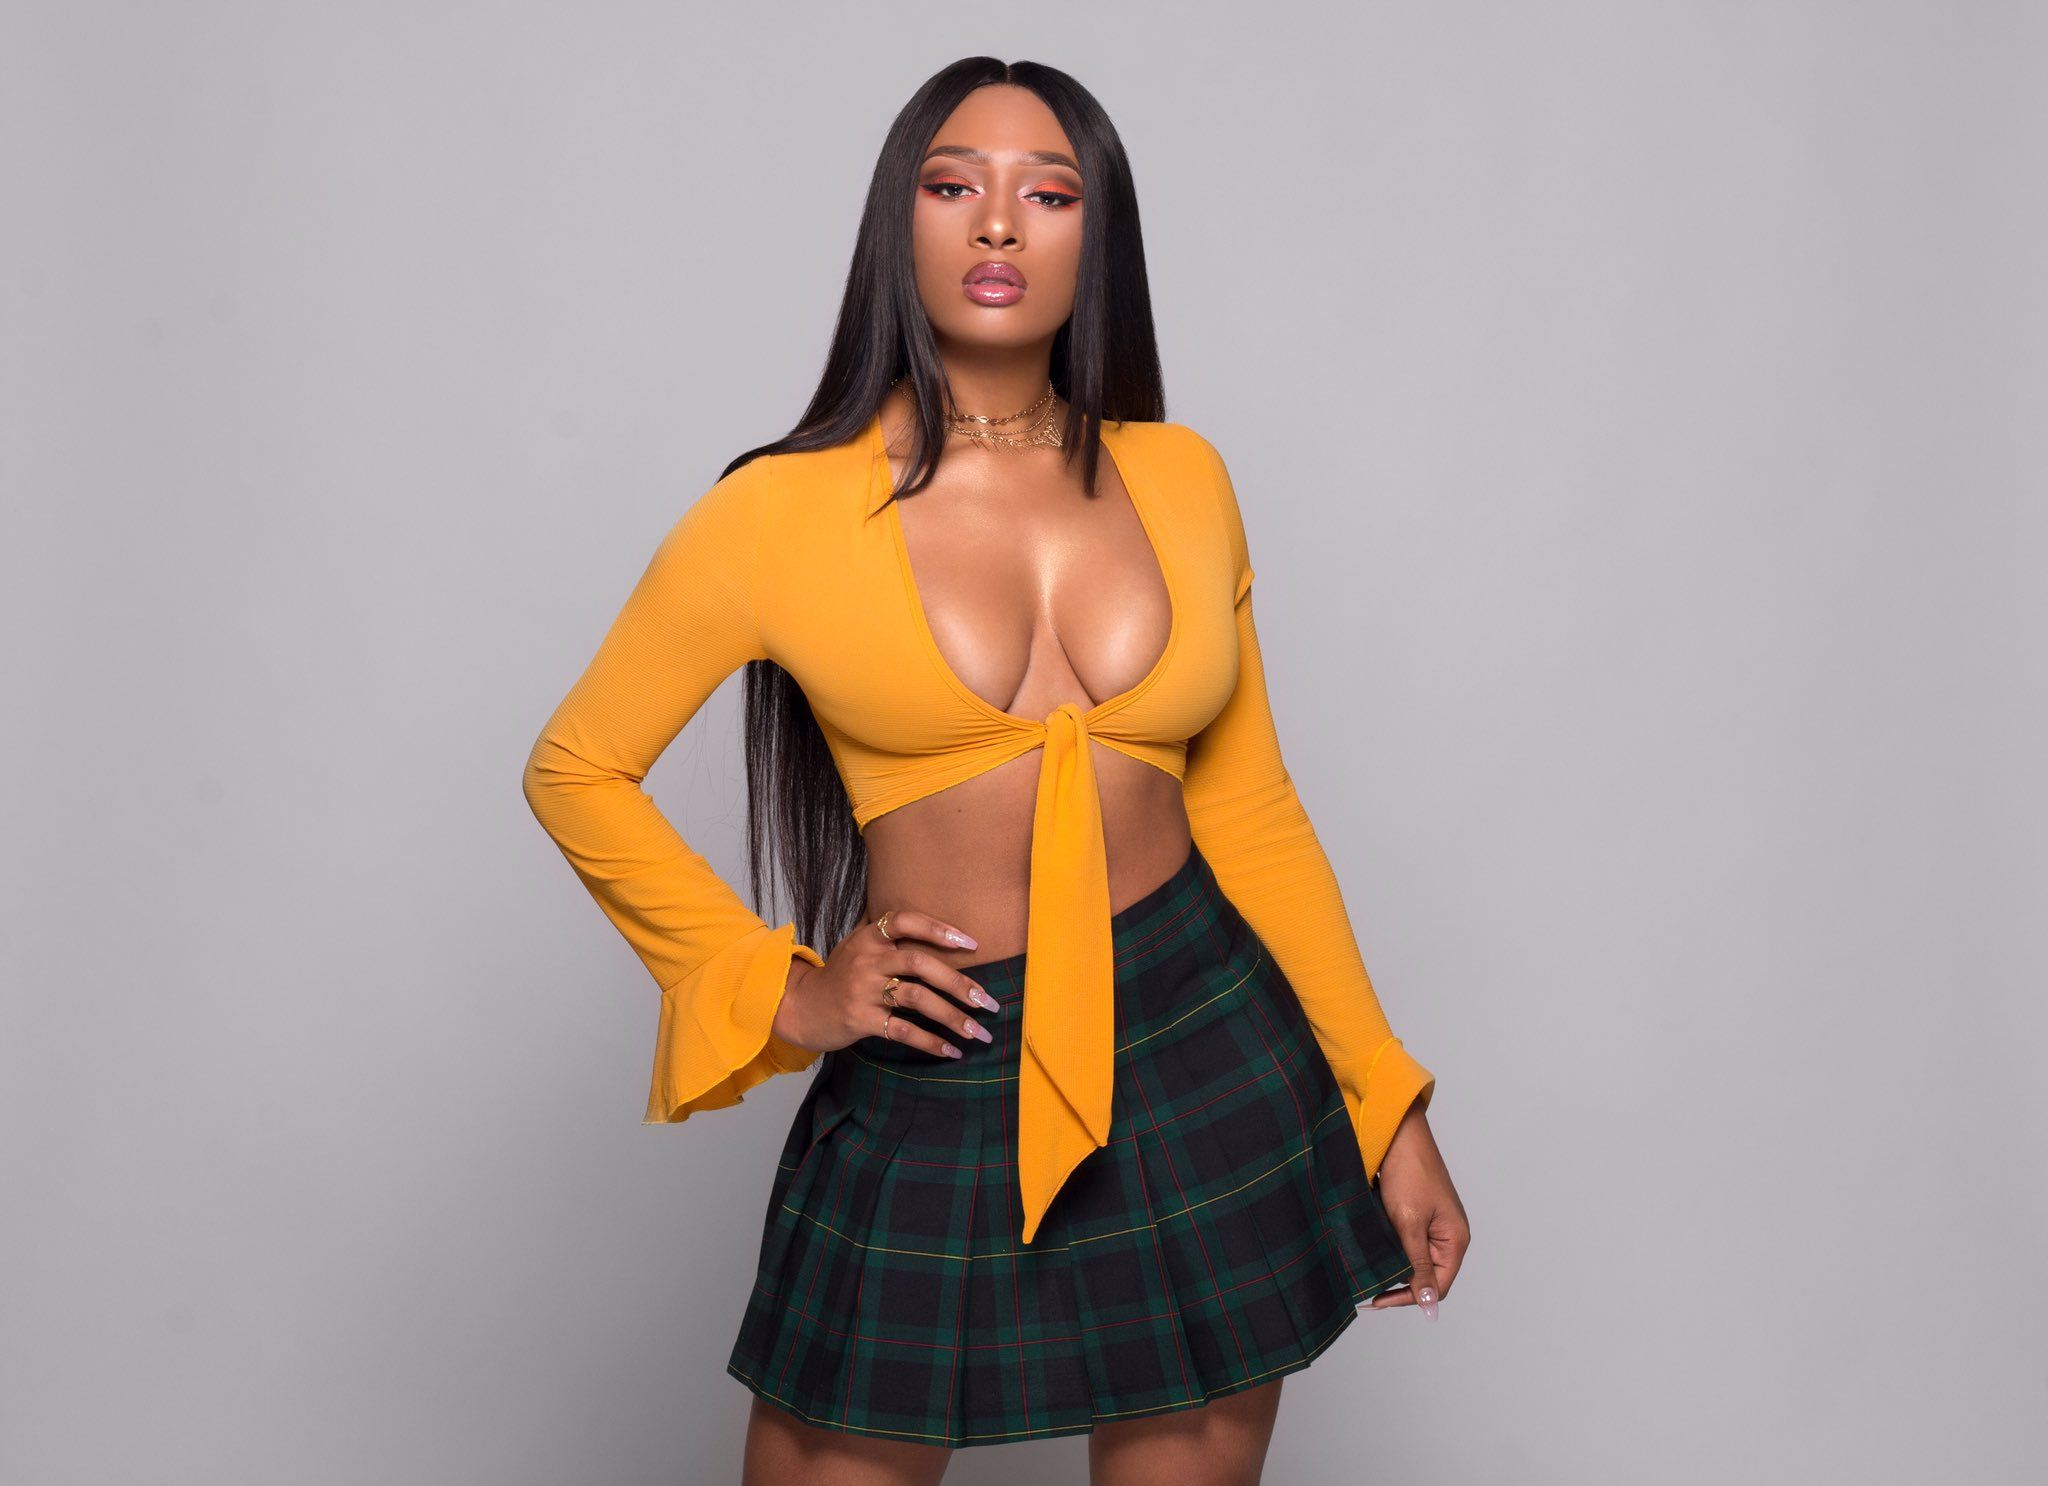 Pin On Megan Thee Stallion